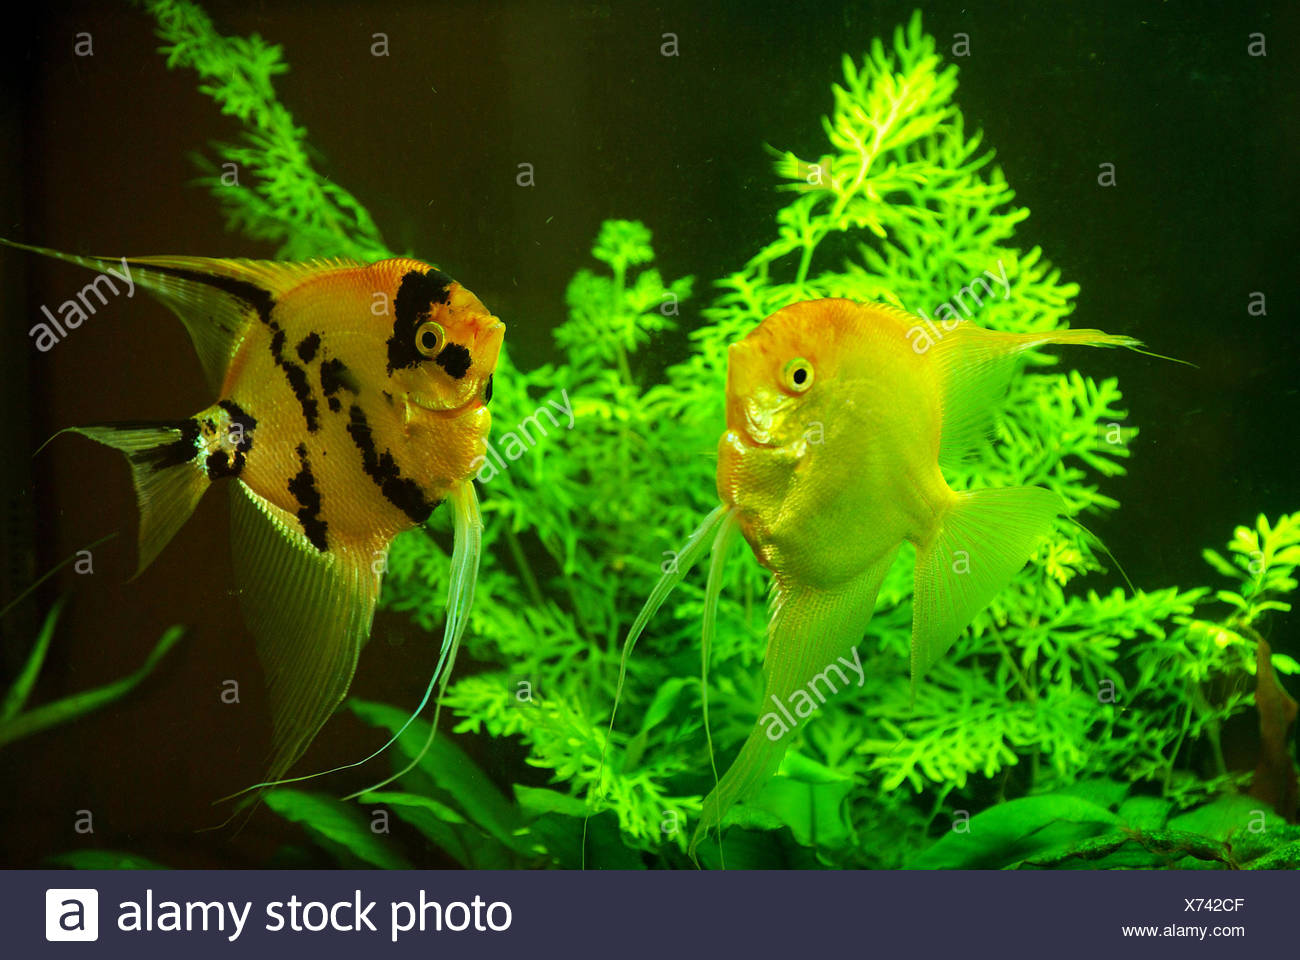 fish in a aquarium water - Stock Image